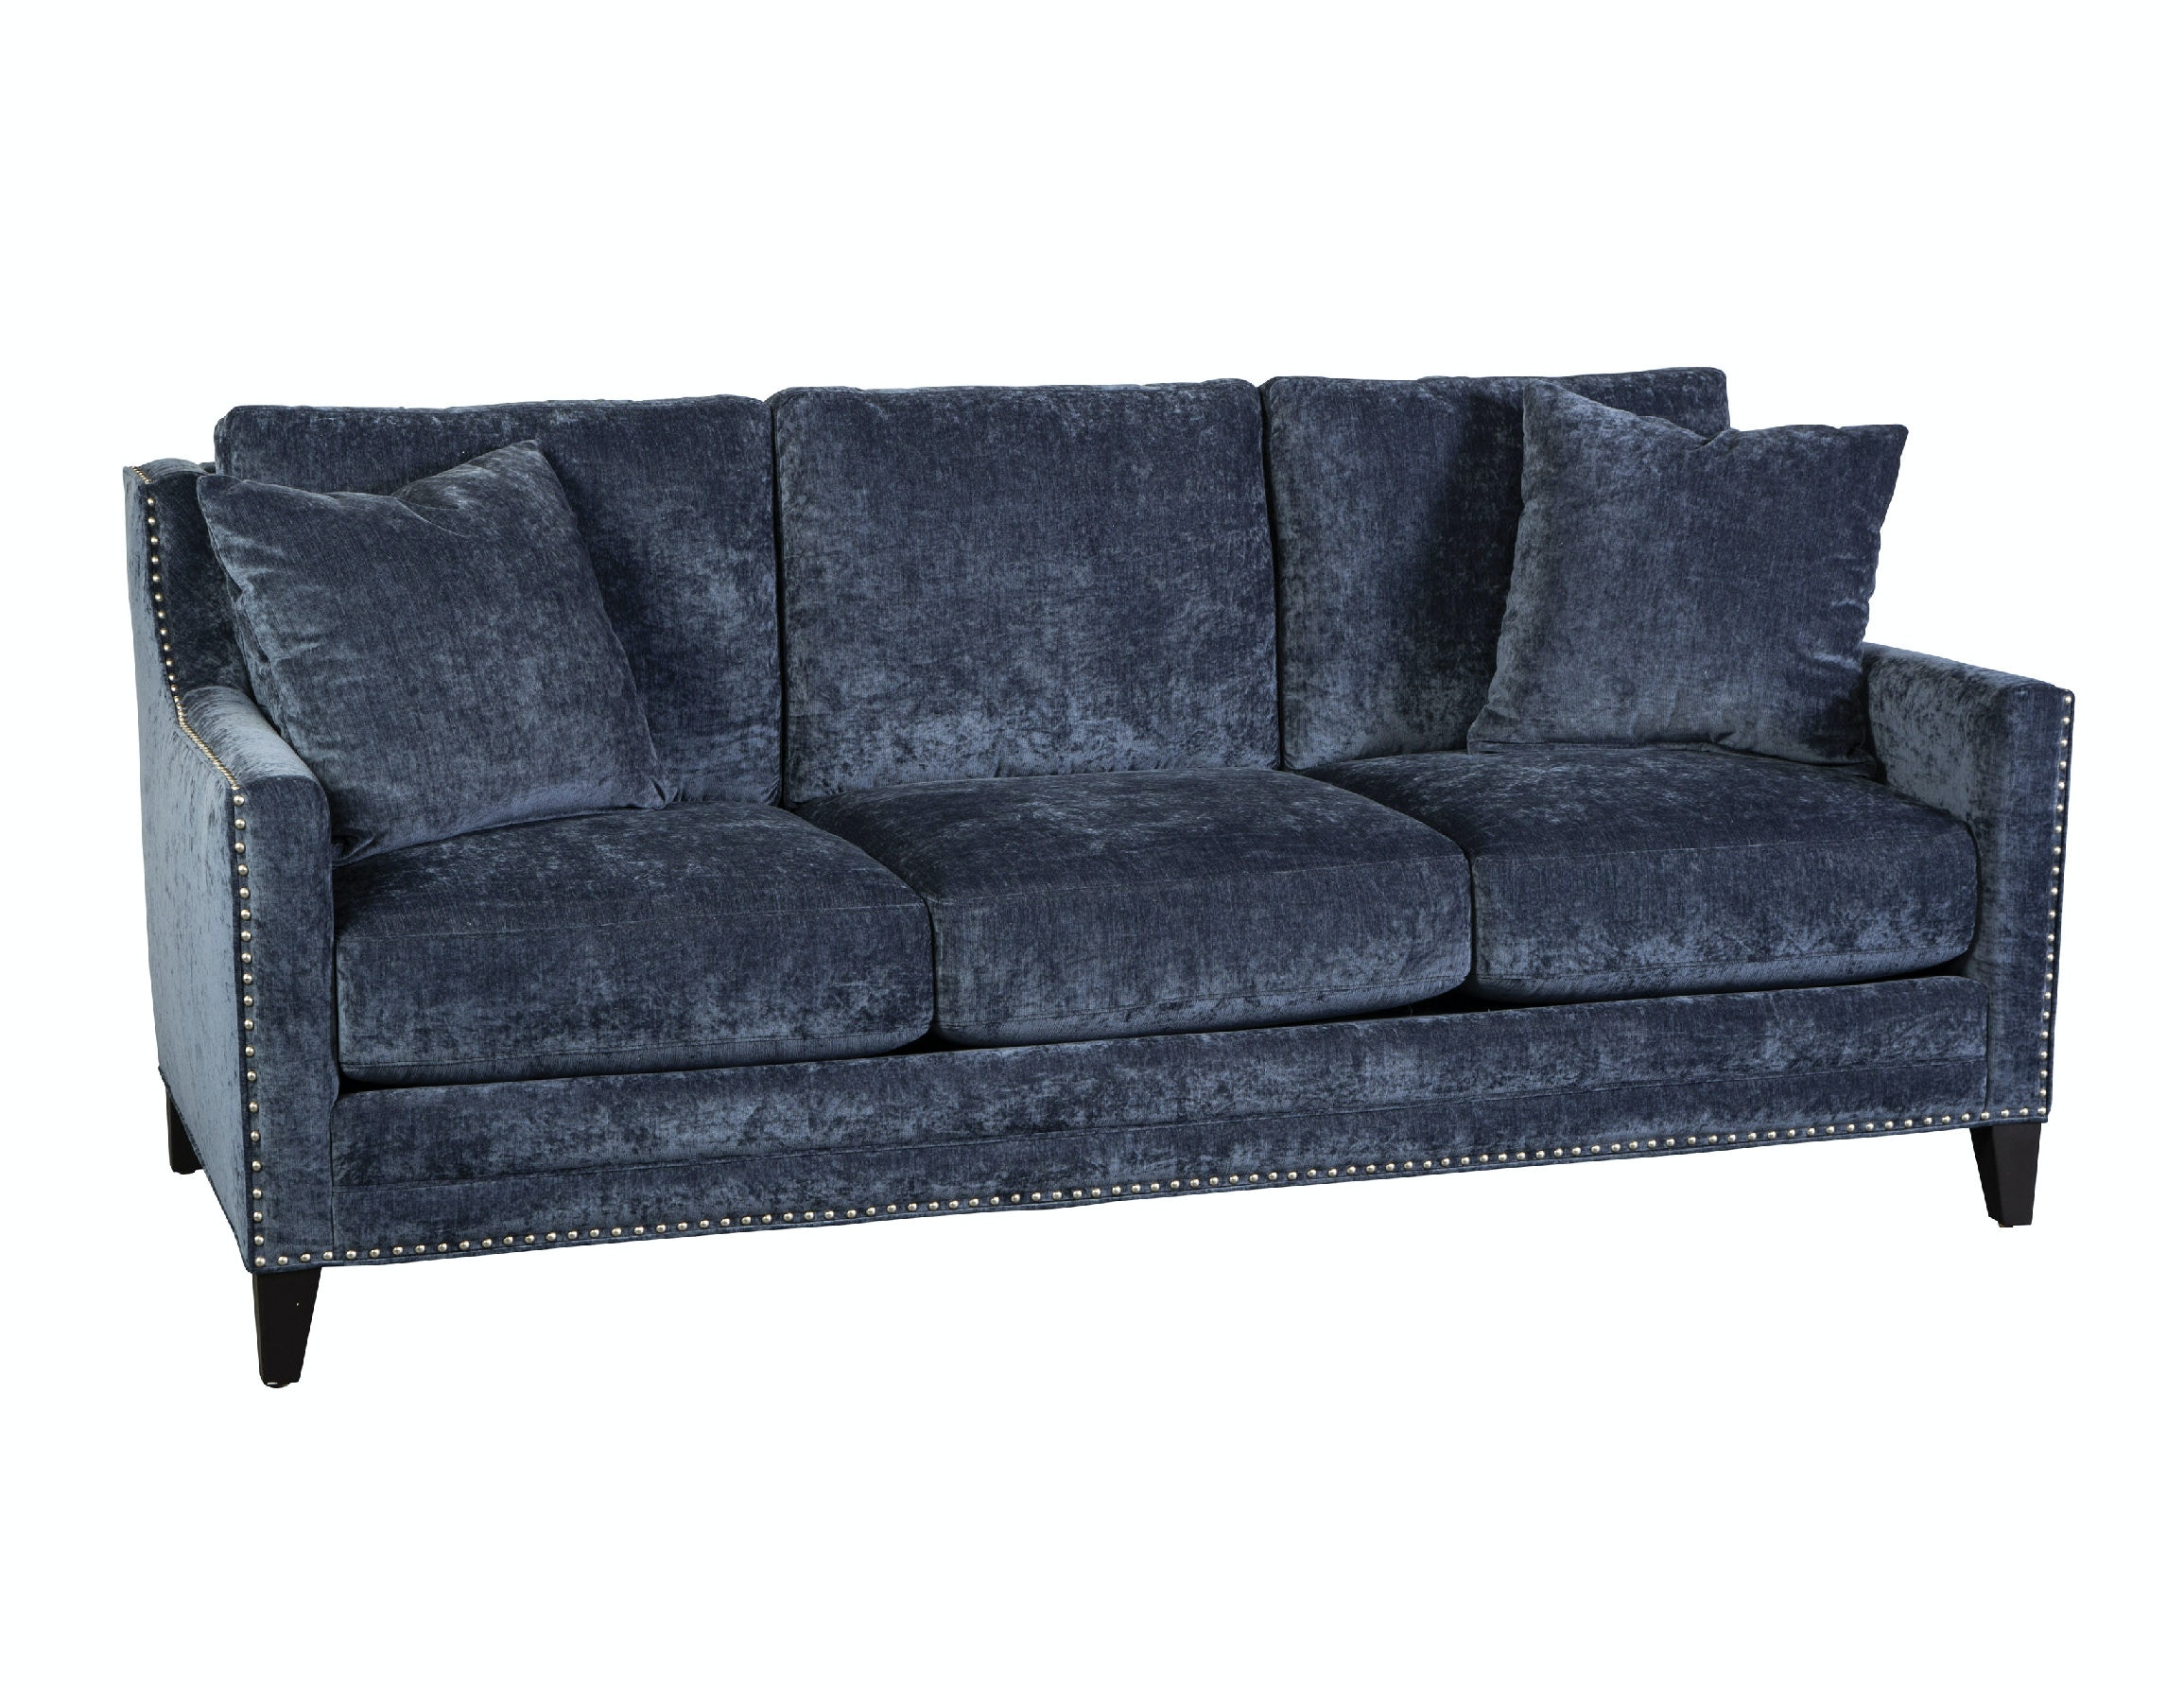 16730. Sofa · 16730 · Tatum · Jonathan Louis International